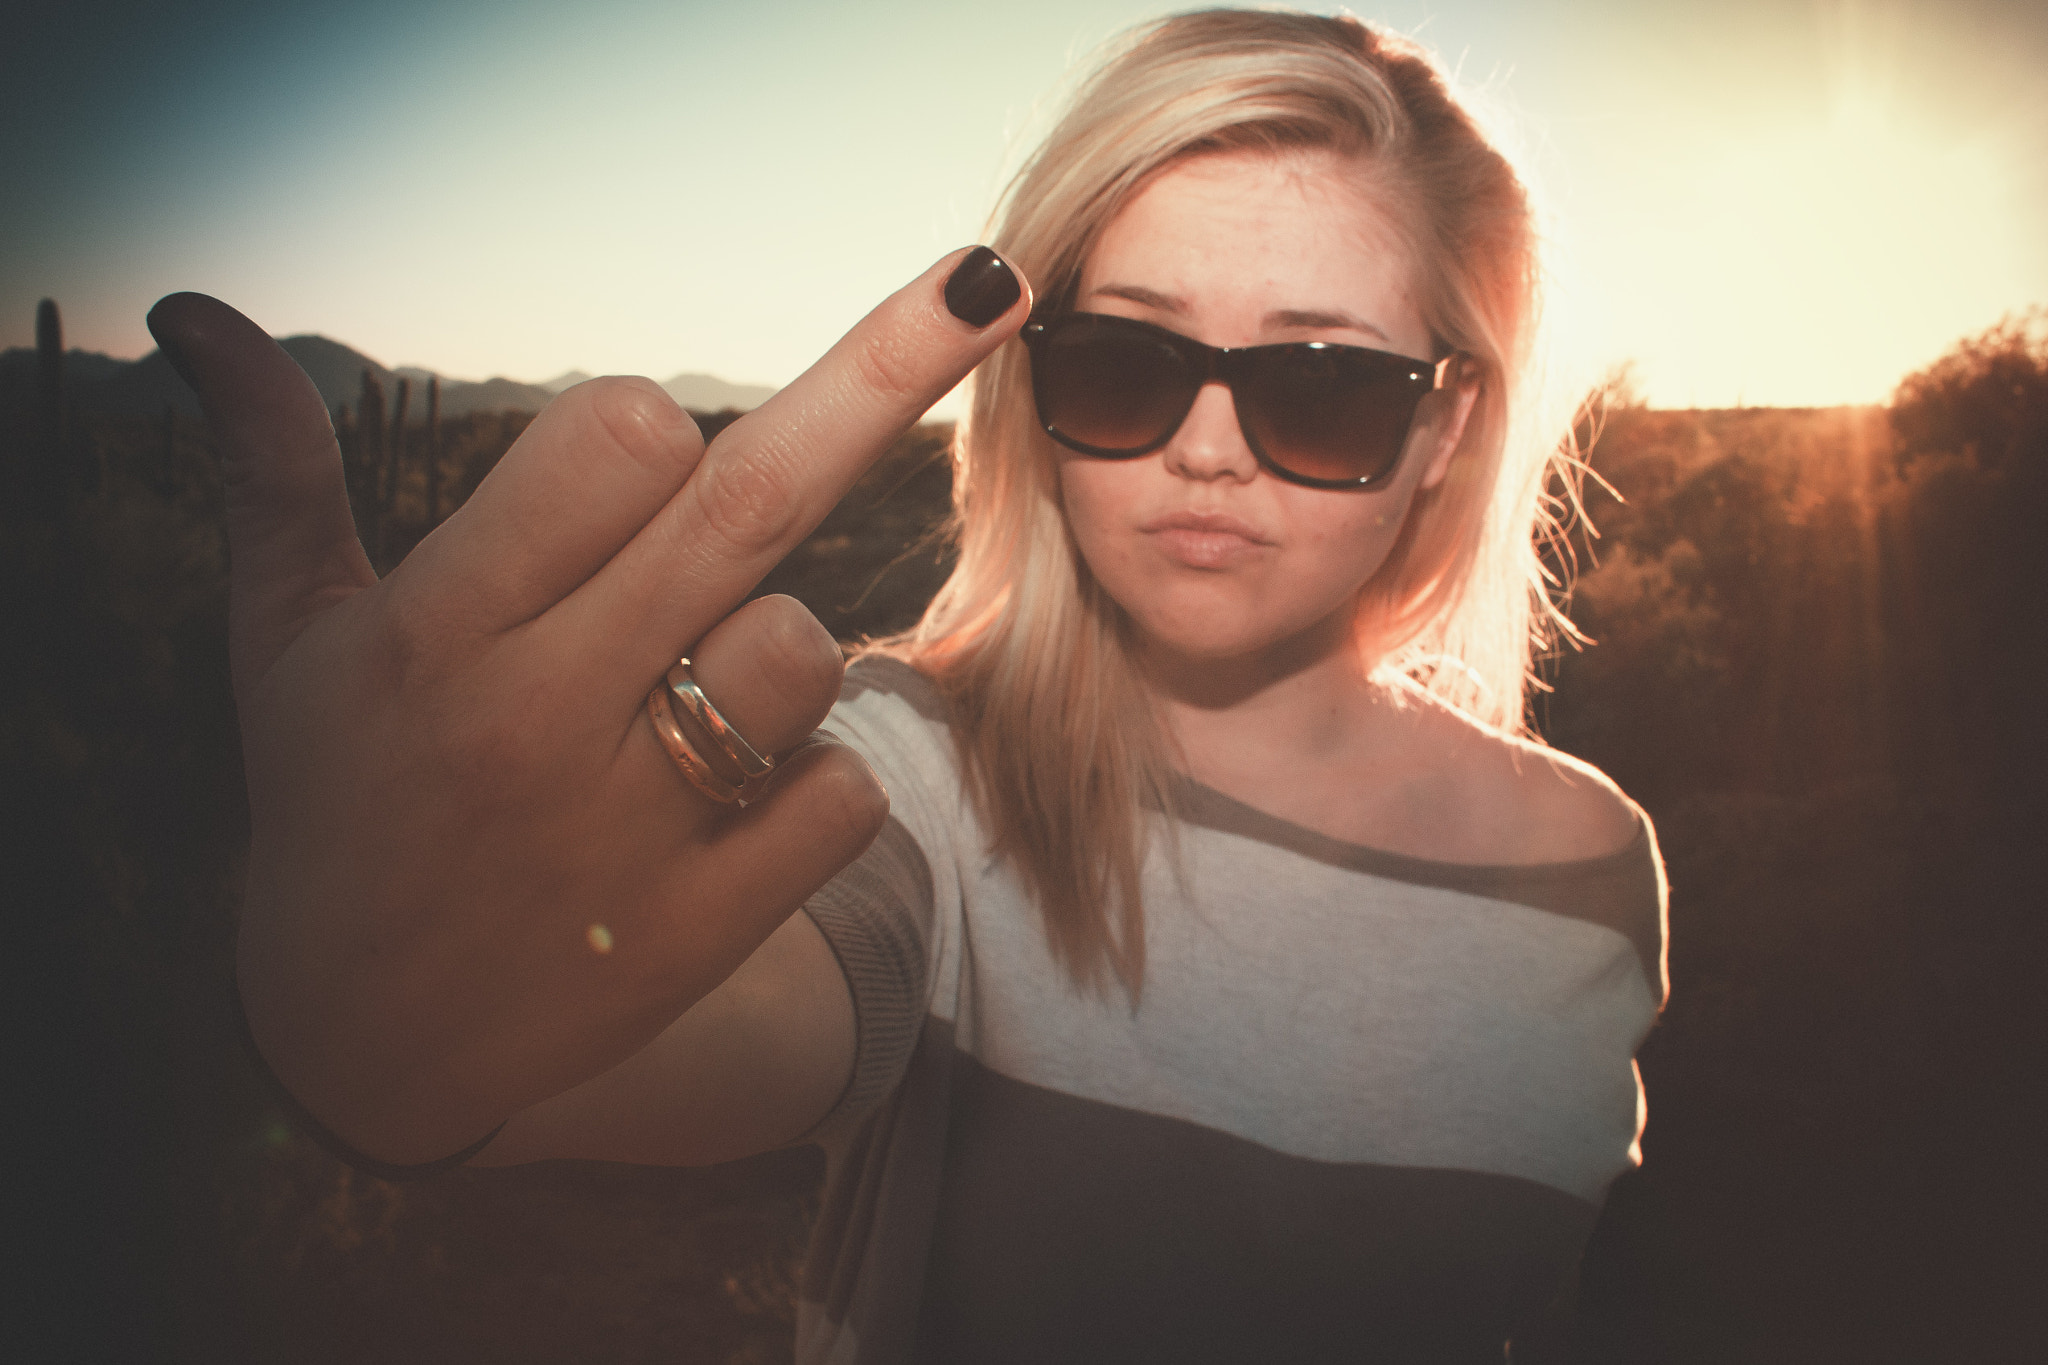 Photograph Fuck You! by Casey Dooley on 500px